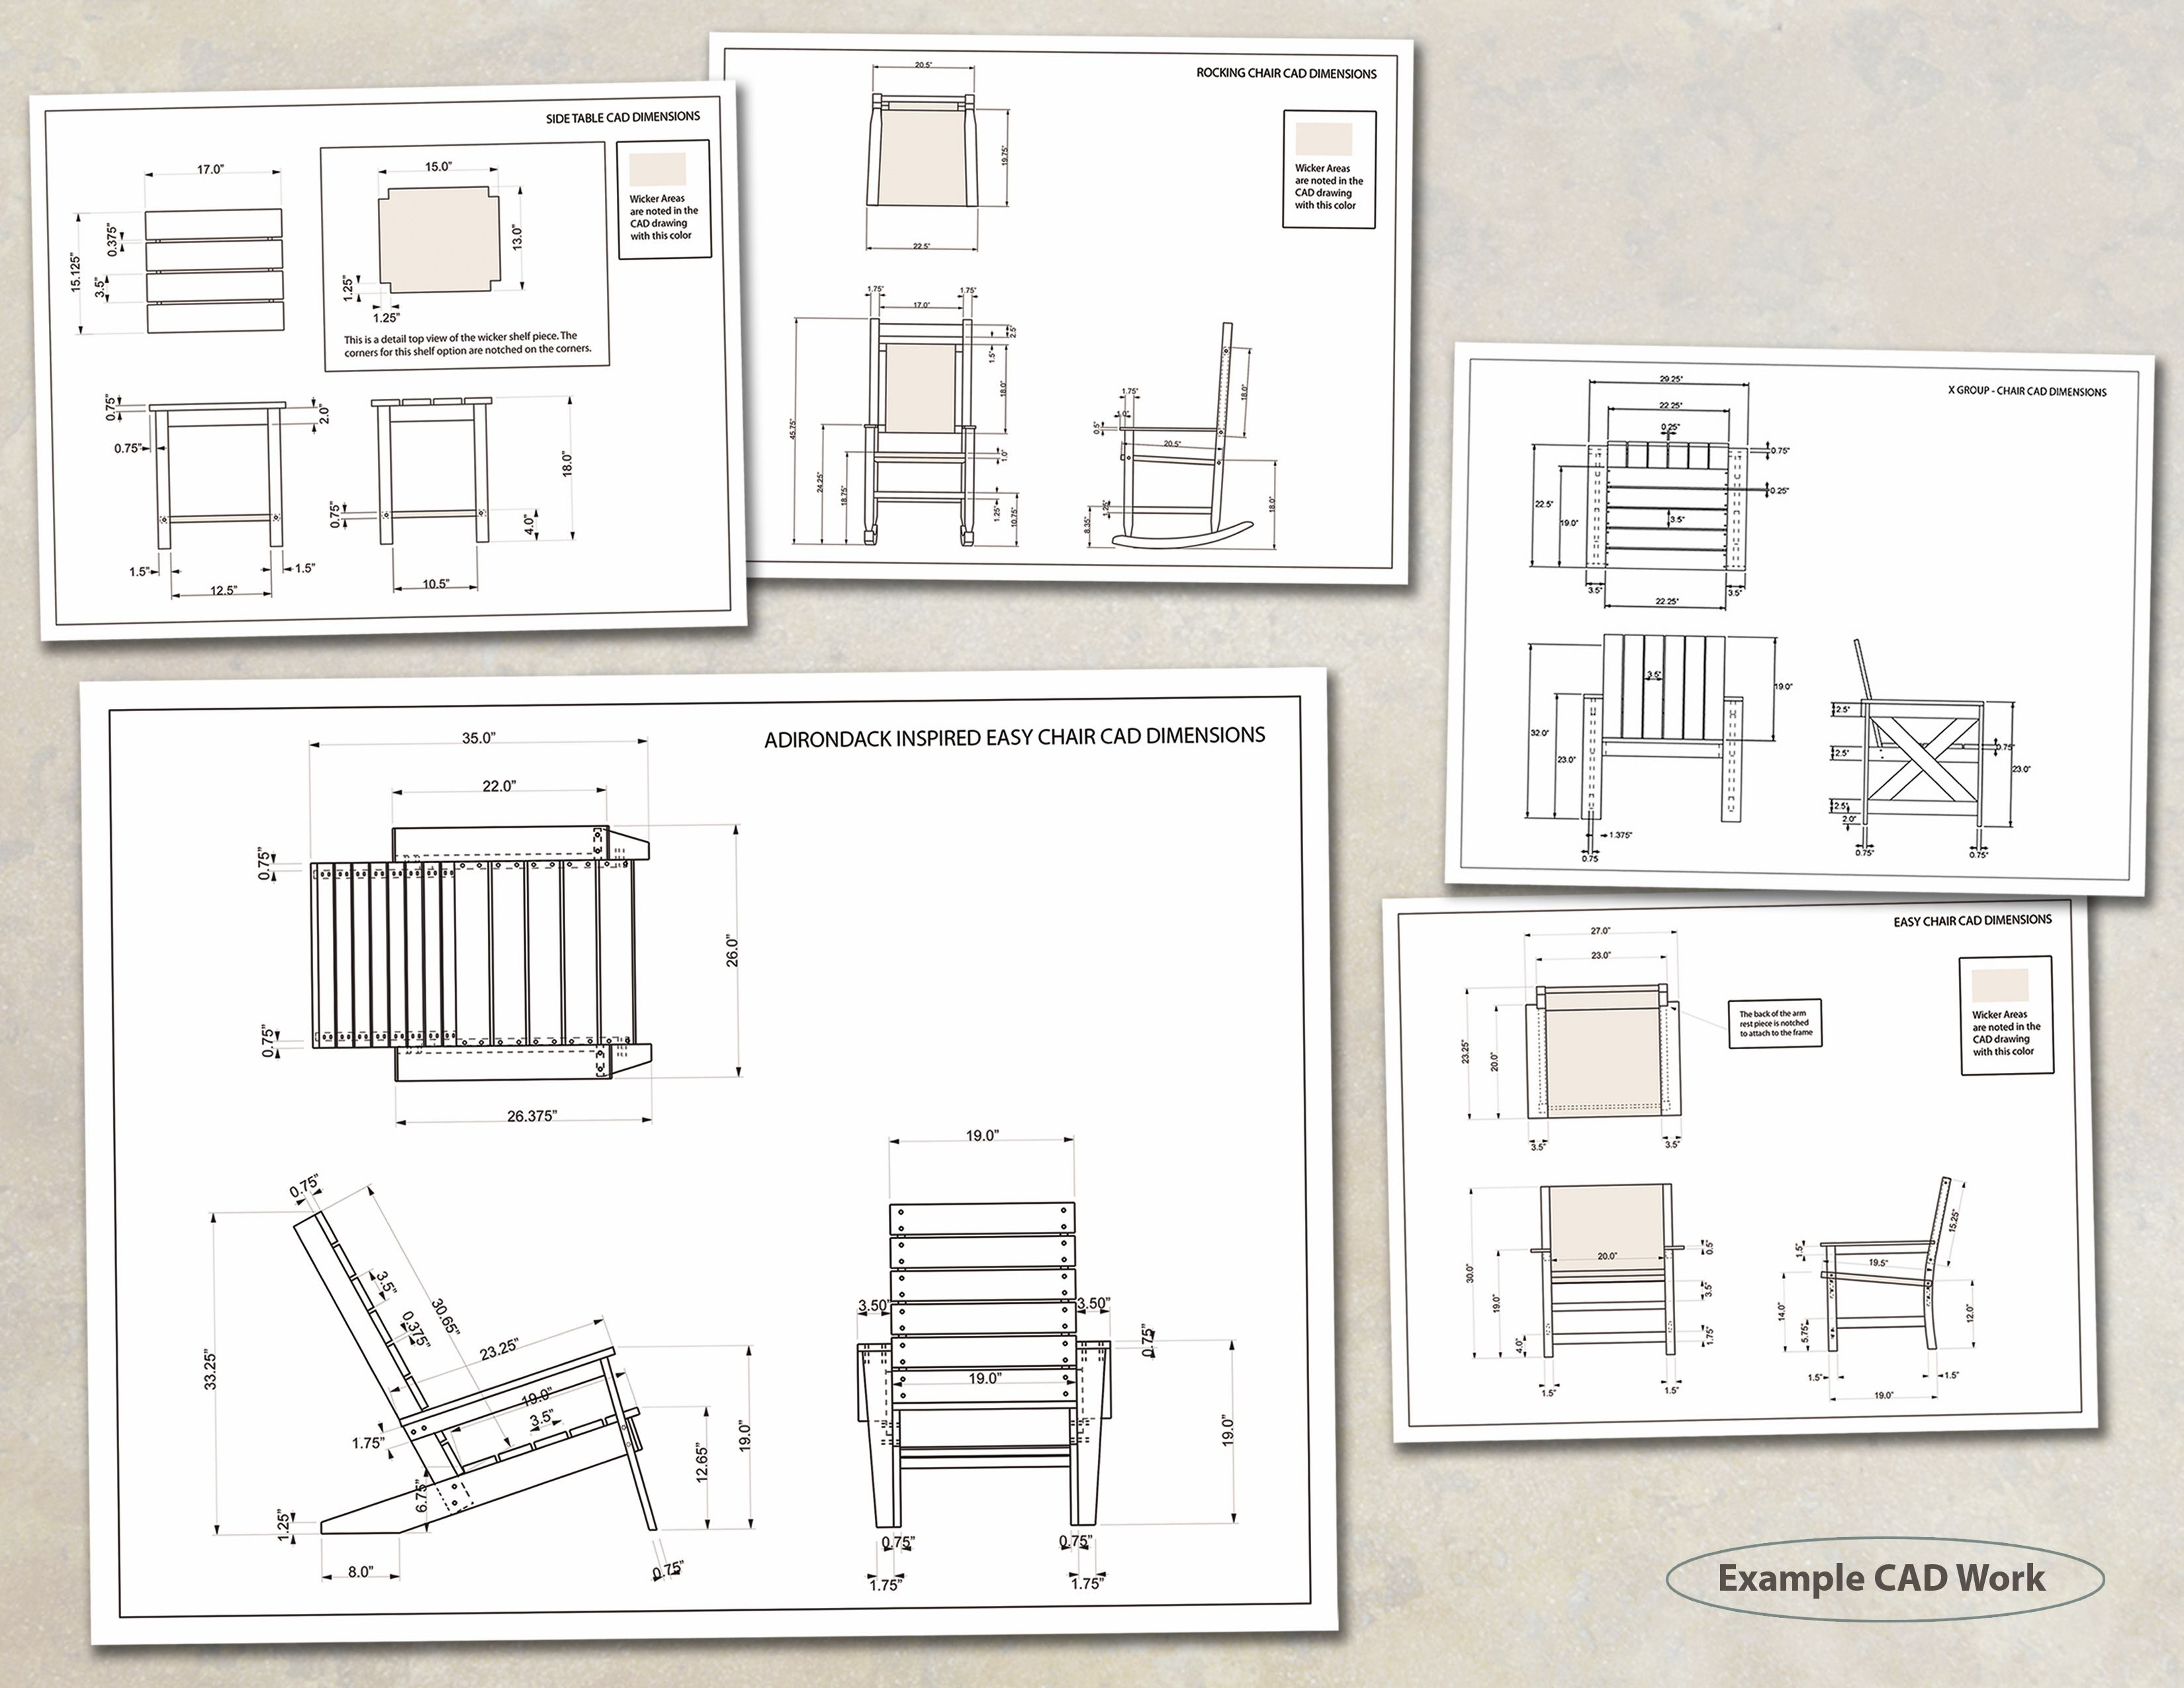 Original 184136 3300 2550 for Chair design drawing